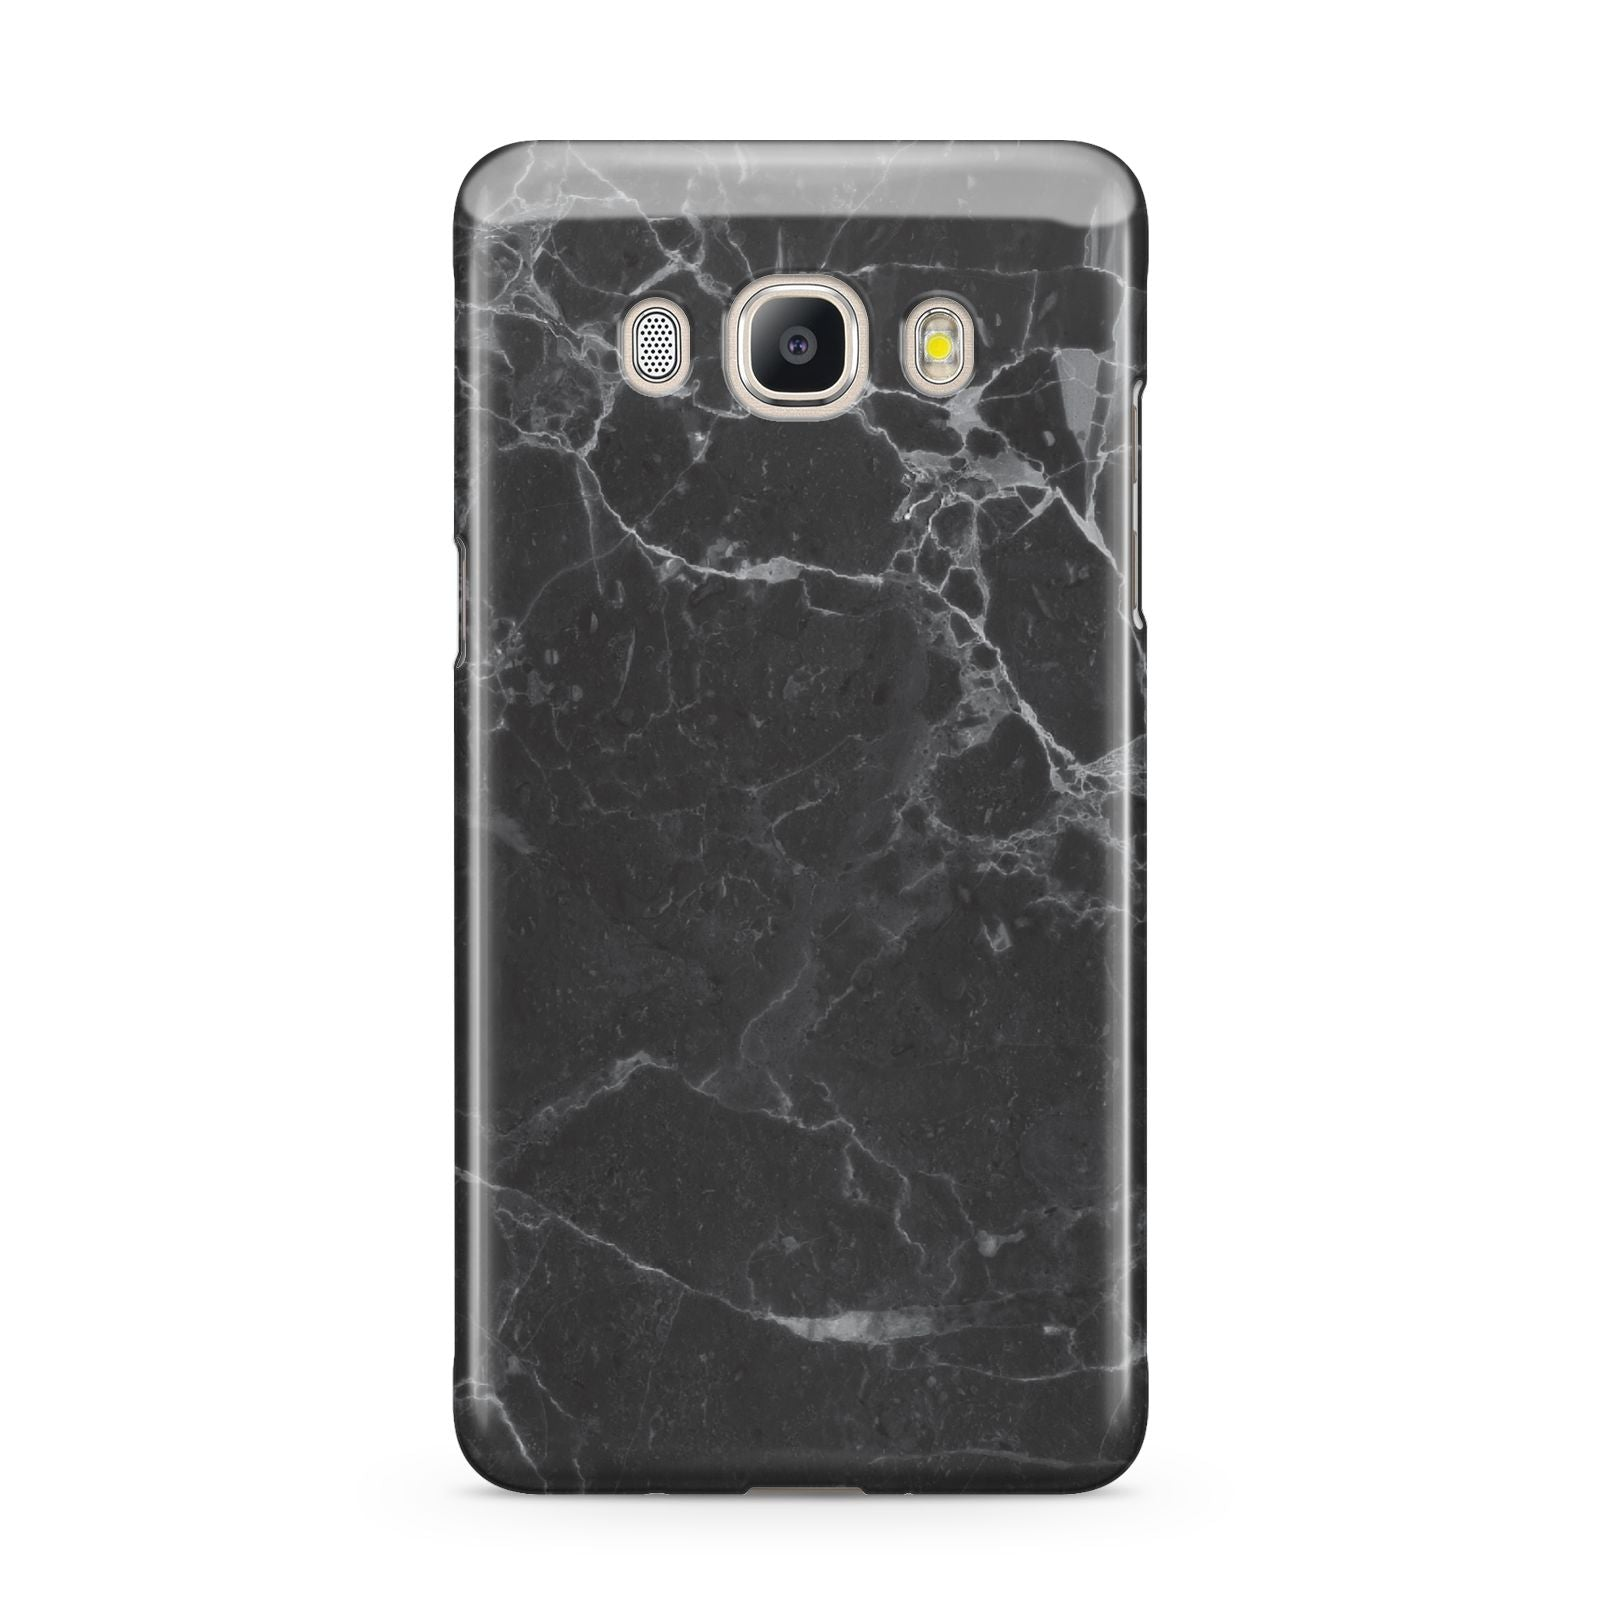 Faux Marble Effect Black Samsung Galaxy J5 2016 Case